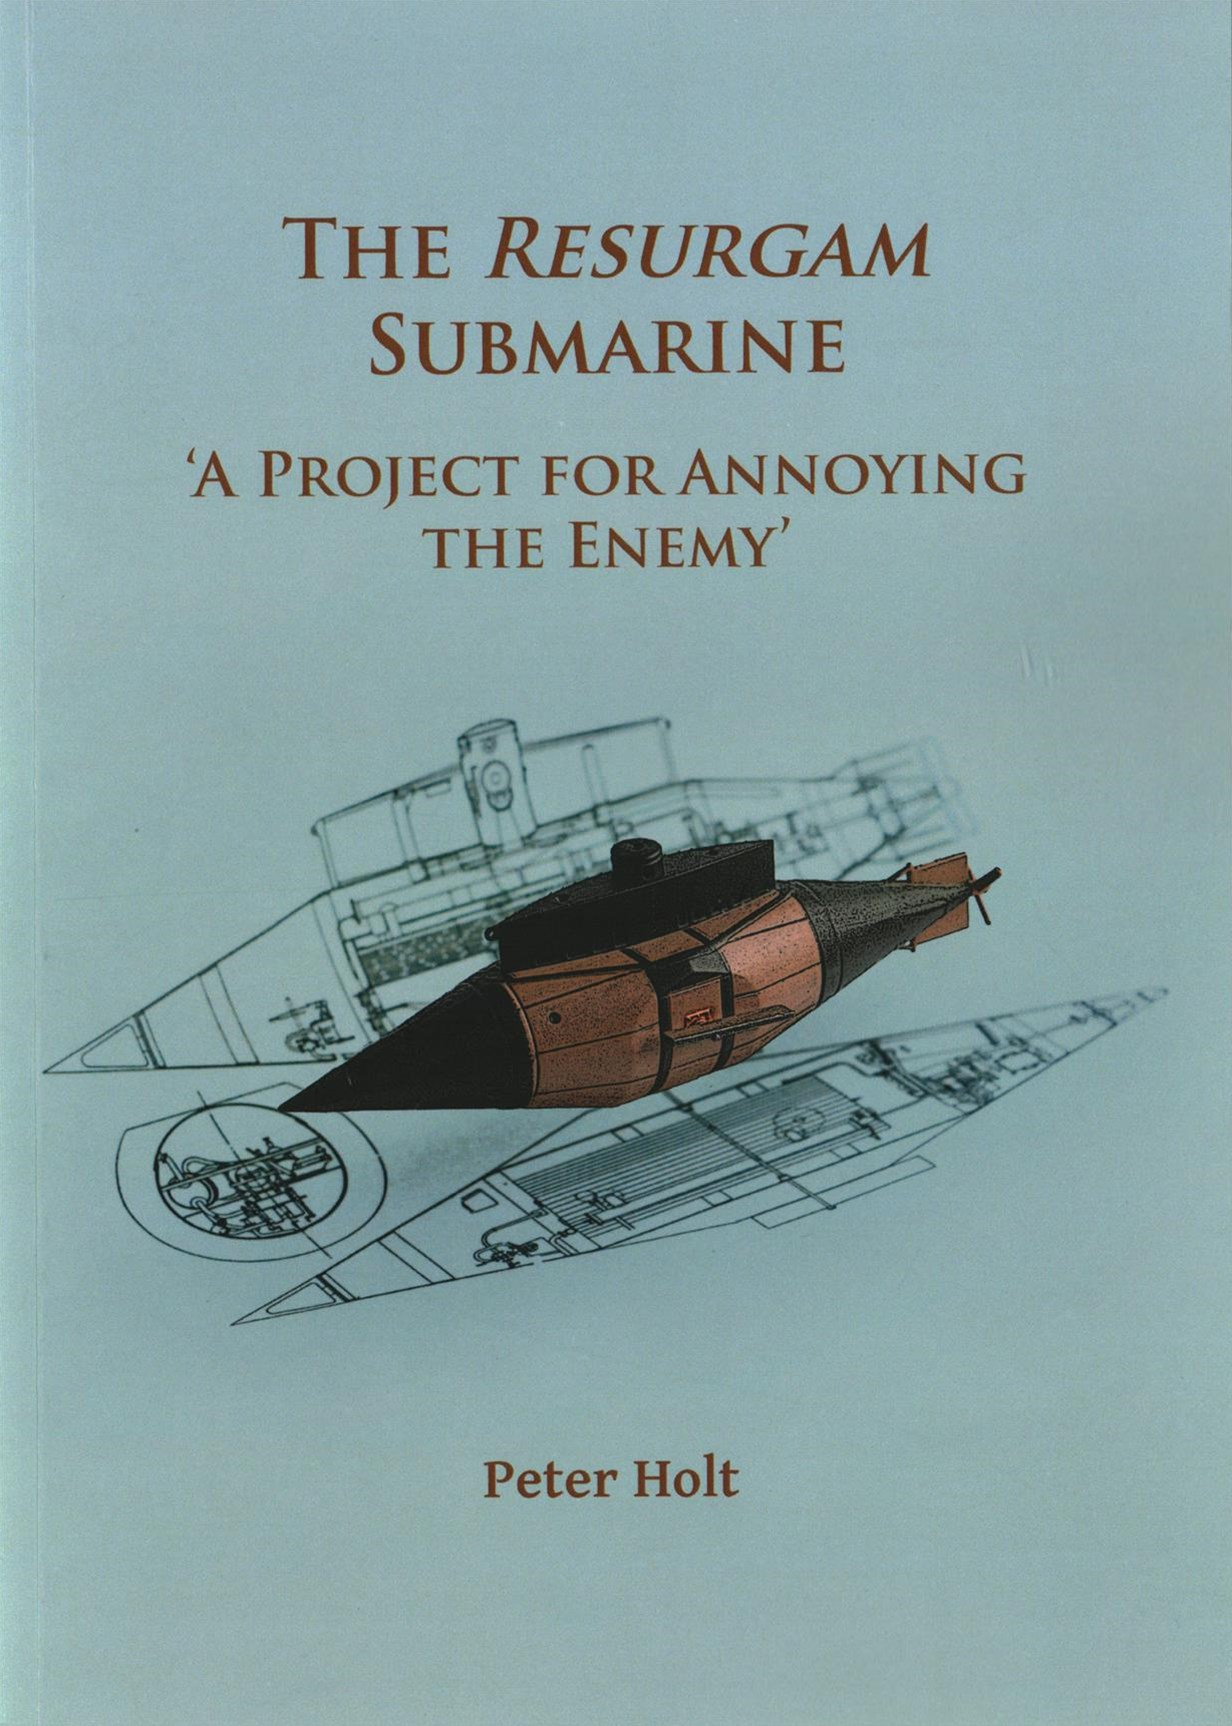 The Resurgam Submarine